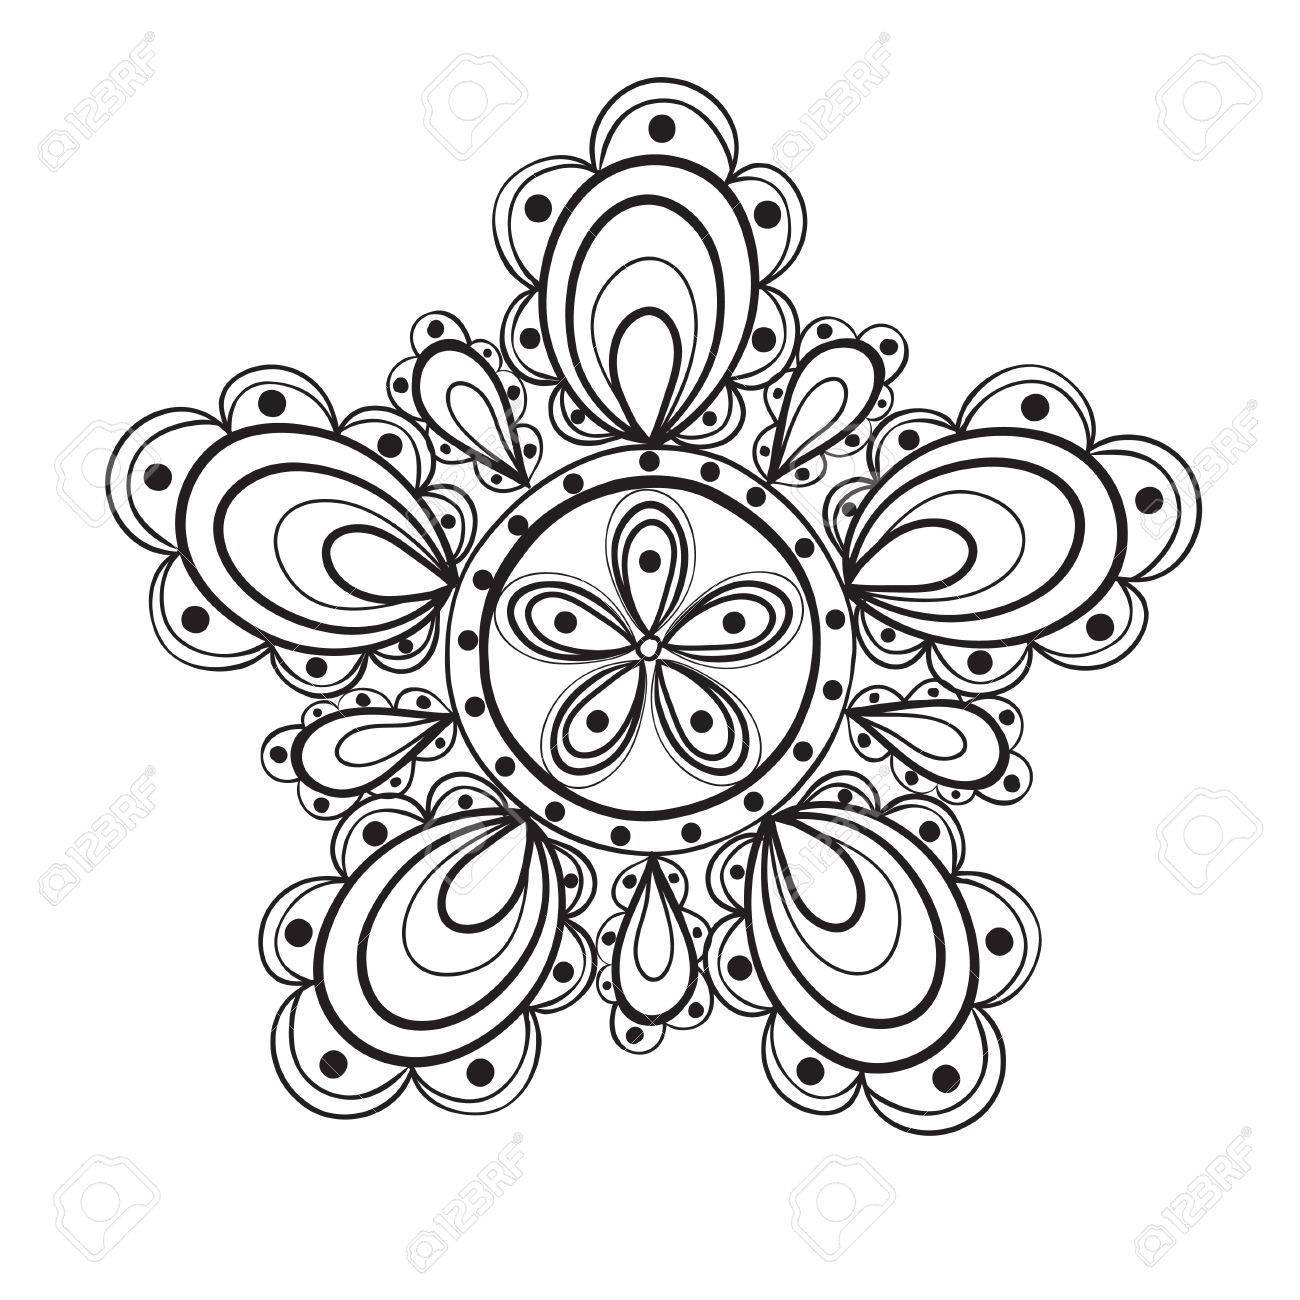 Fantasy Flower Black And White Lace Pattern Royalty Free Cliparts